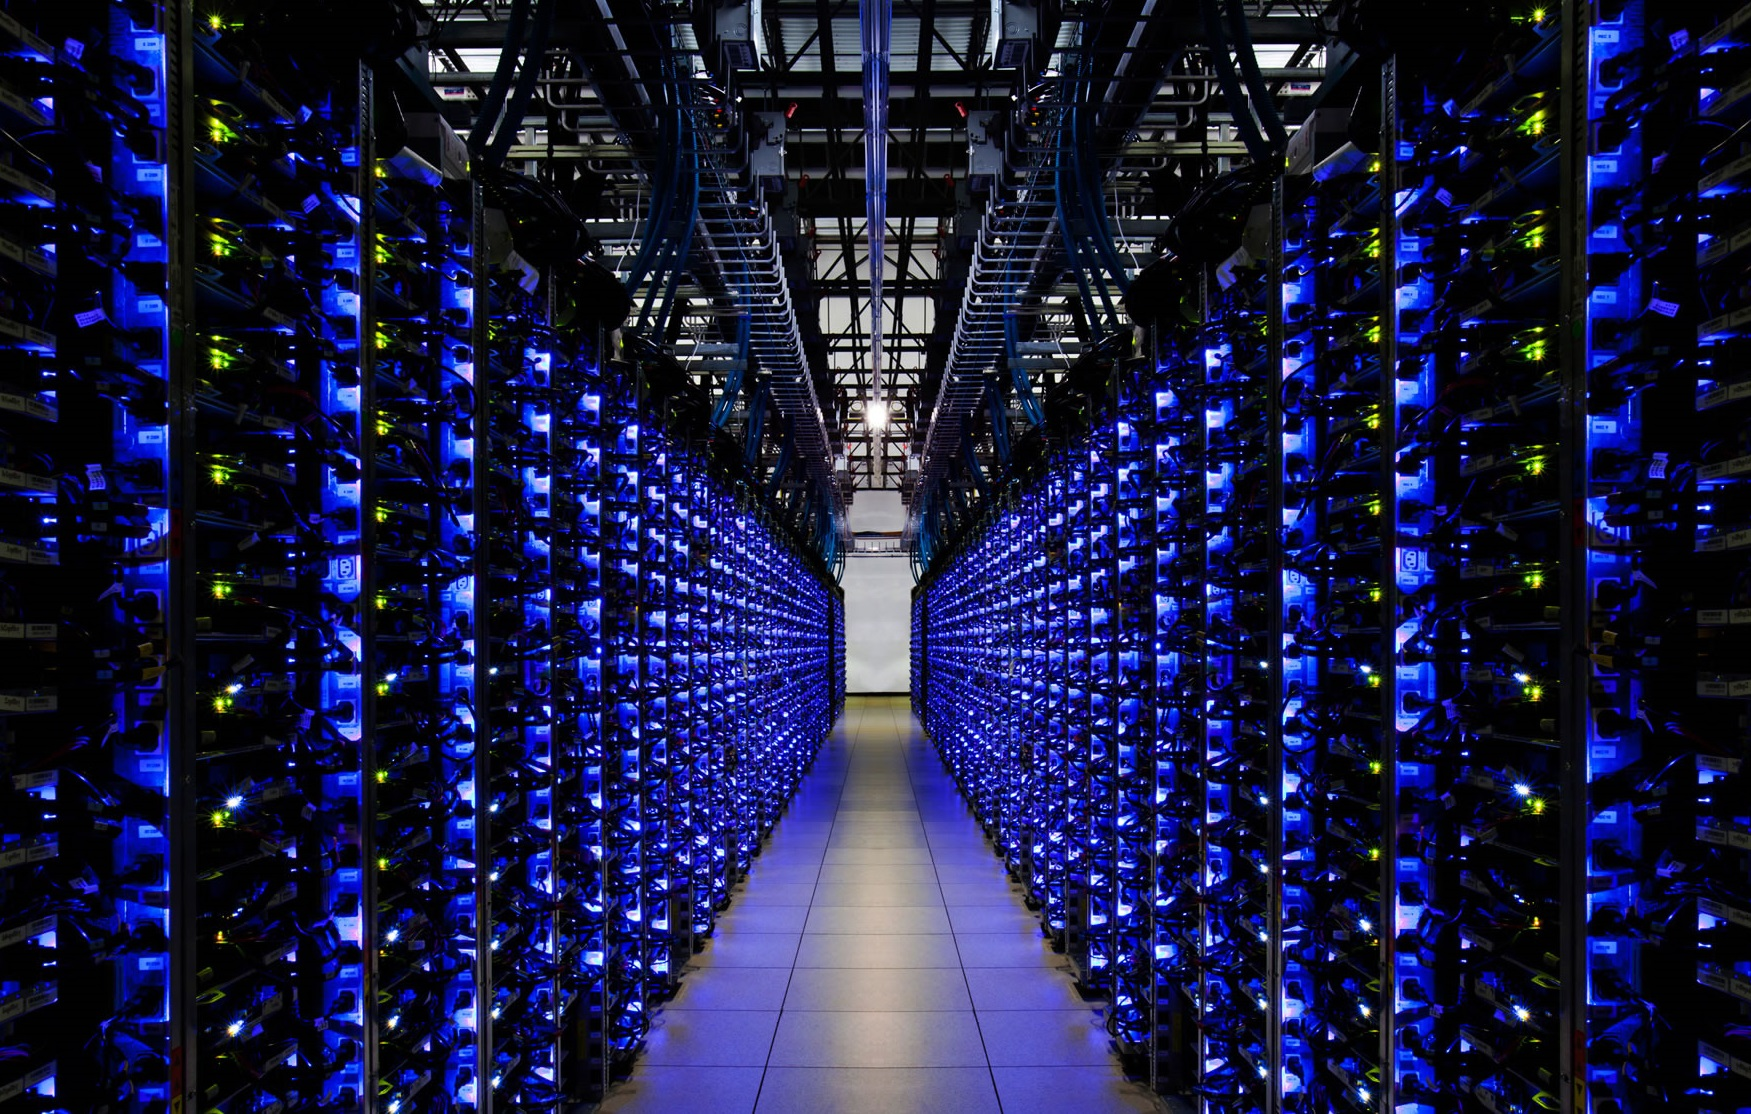 Customized Dedicated Server Solutions For Your Business At Whitelabel ITSolutions